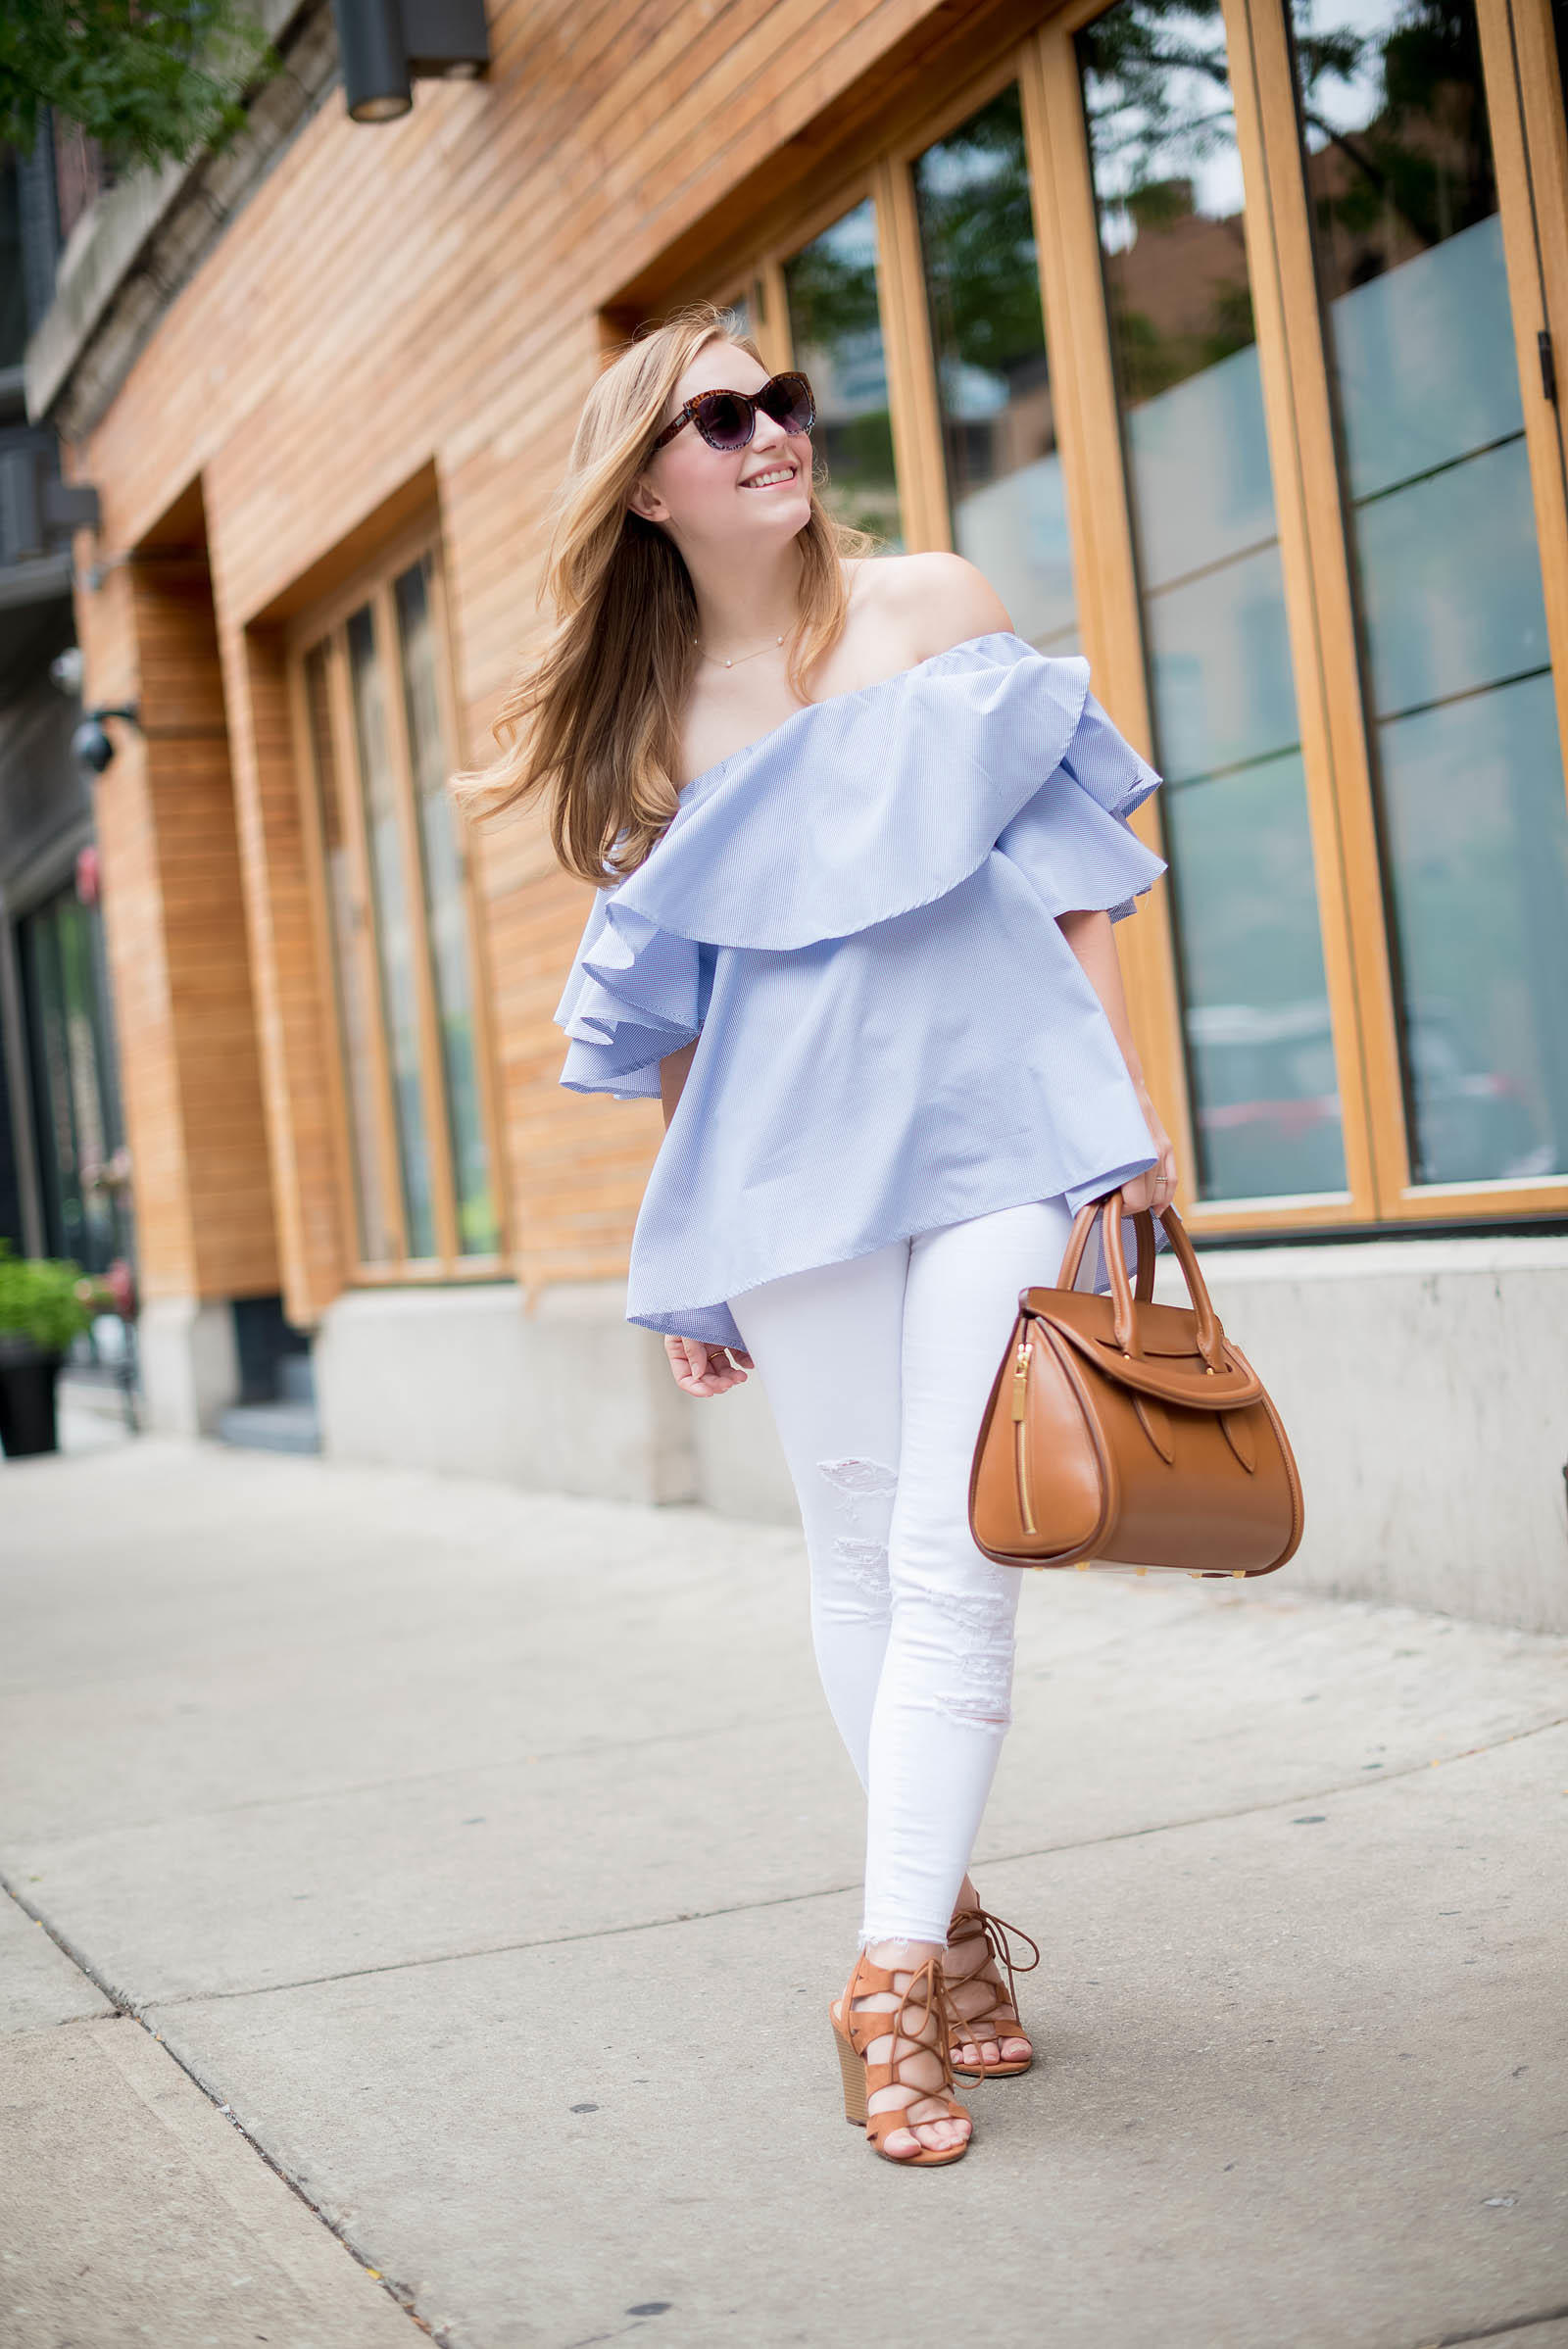 Ruffle Off the Shoulder Top White Jeans